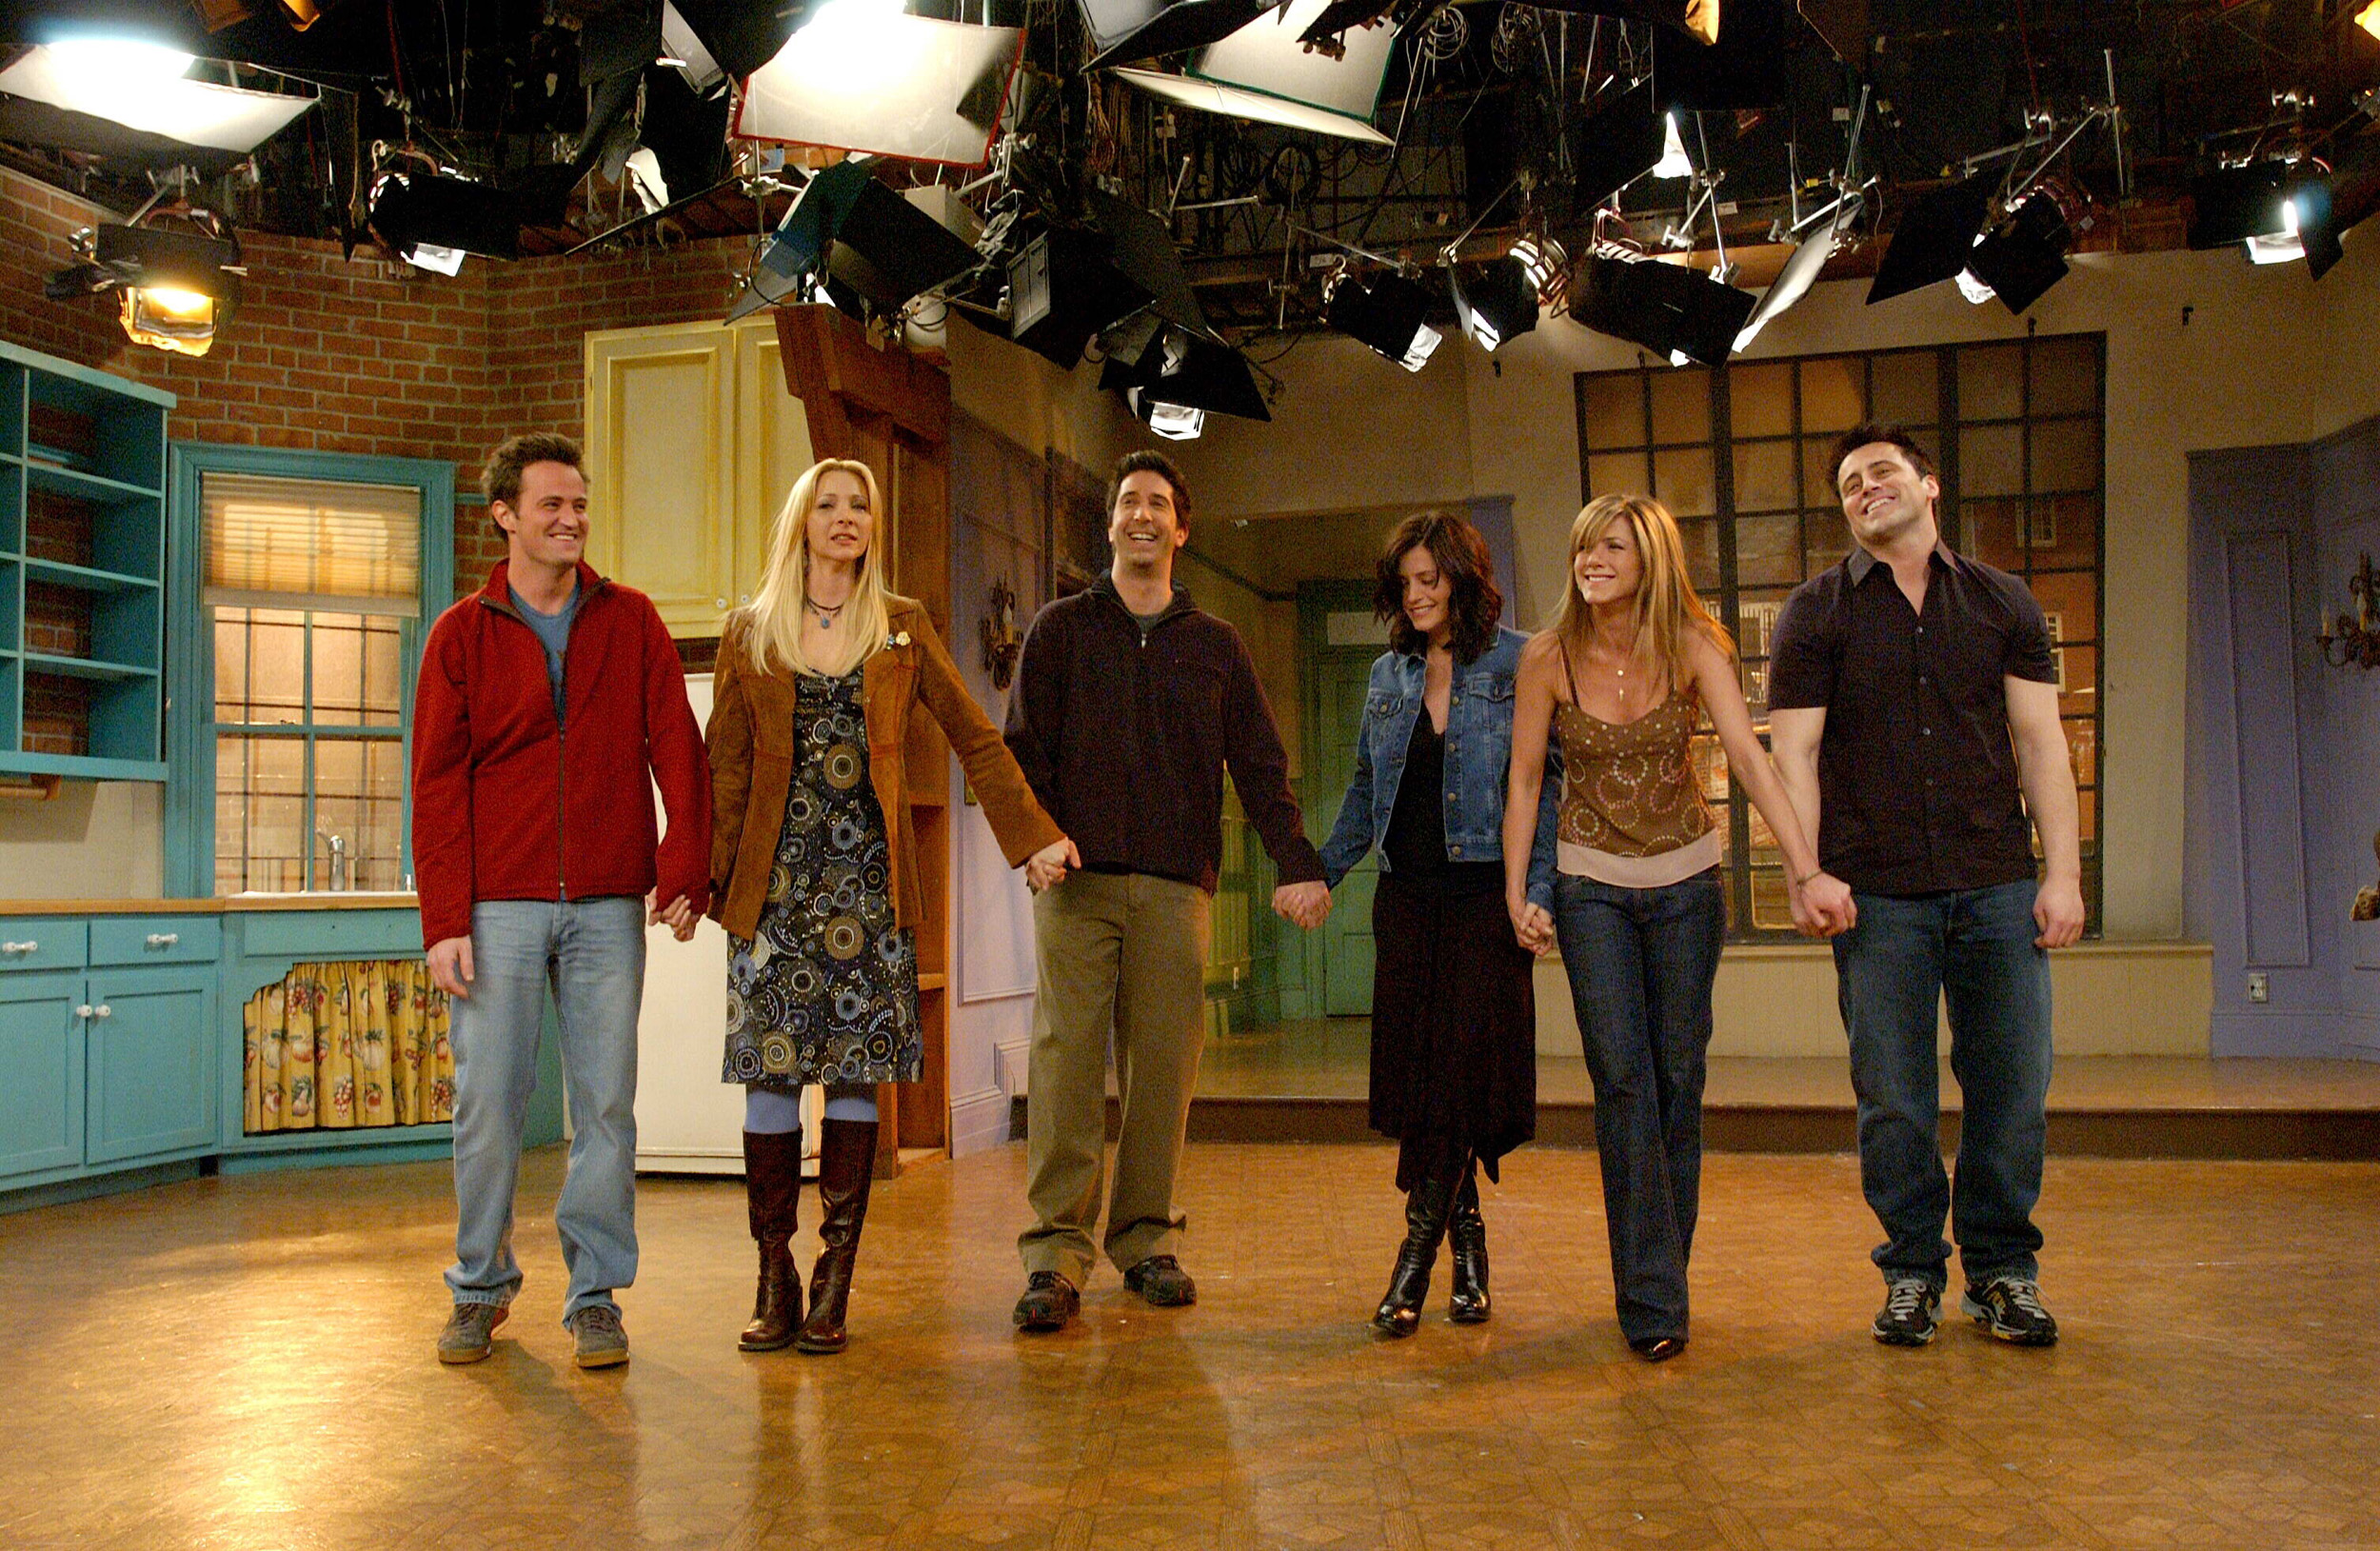 30 Facts About Friends Thatll Make You Go Whoa